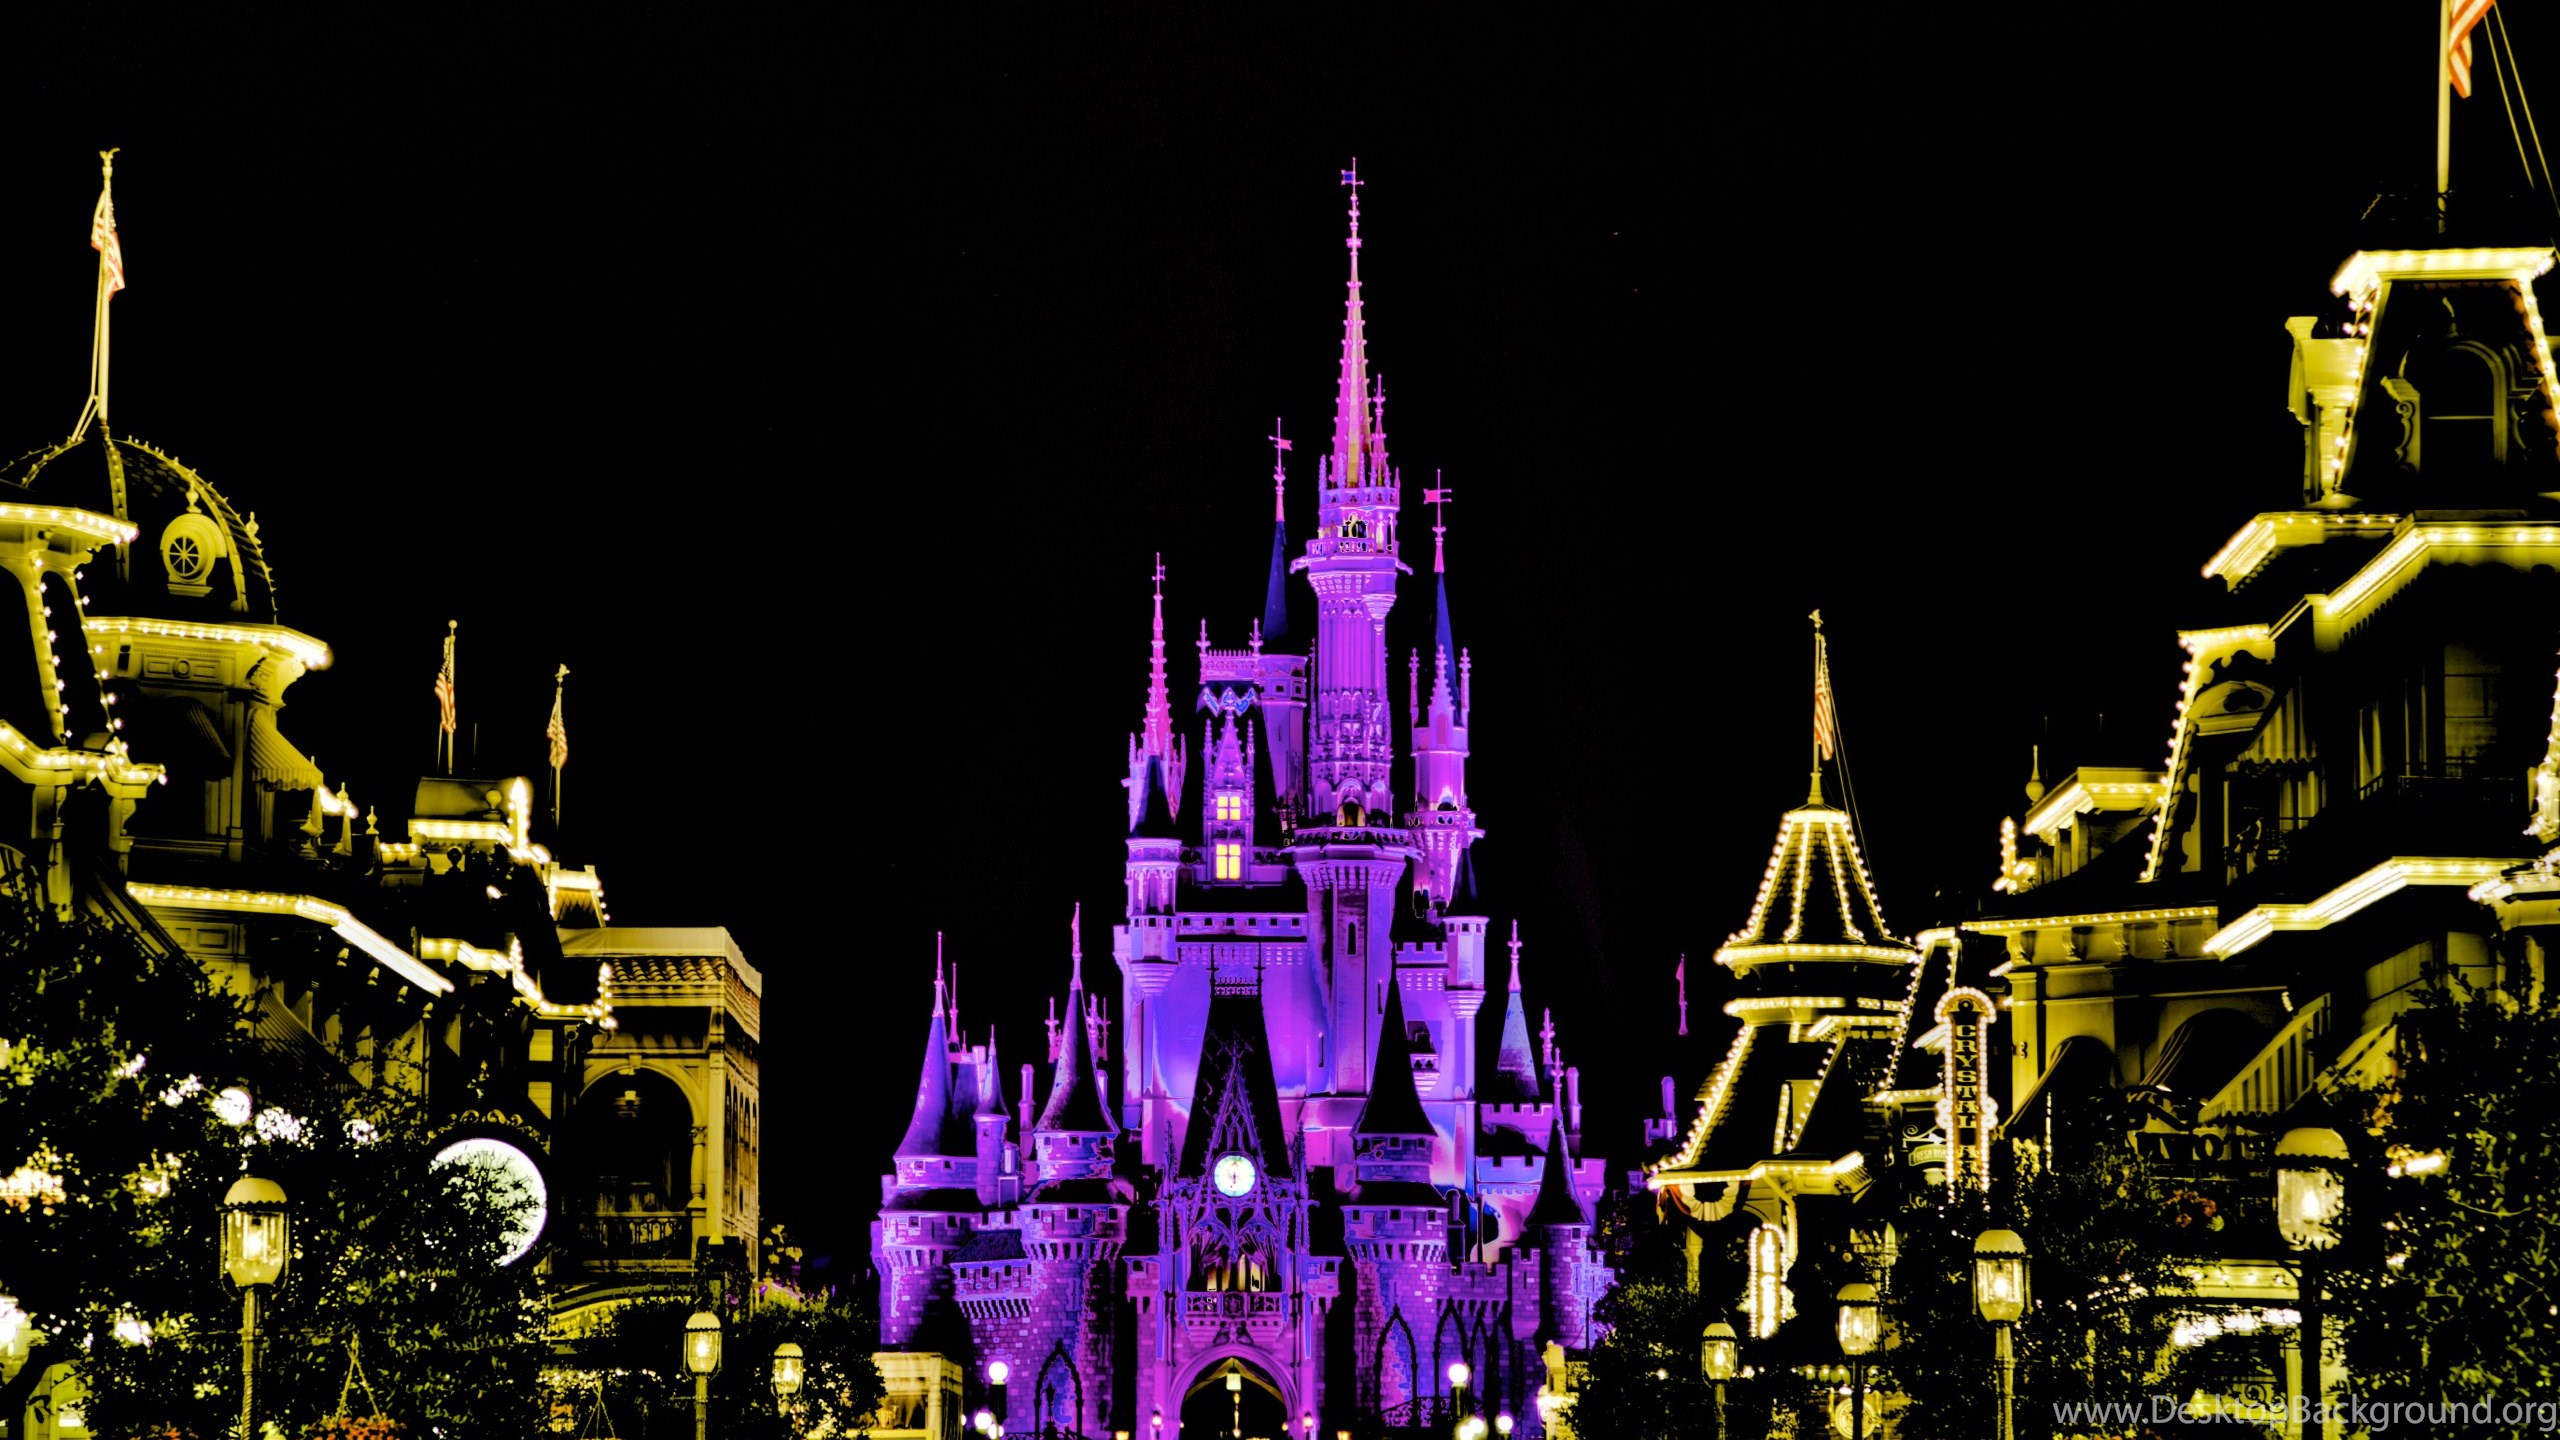 Cinderella Castle Wallpapers AtDisneyAgain Desktop Background